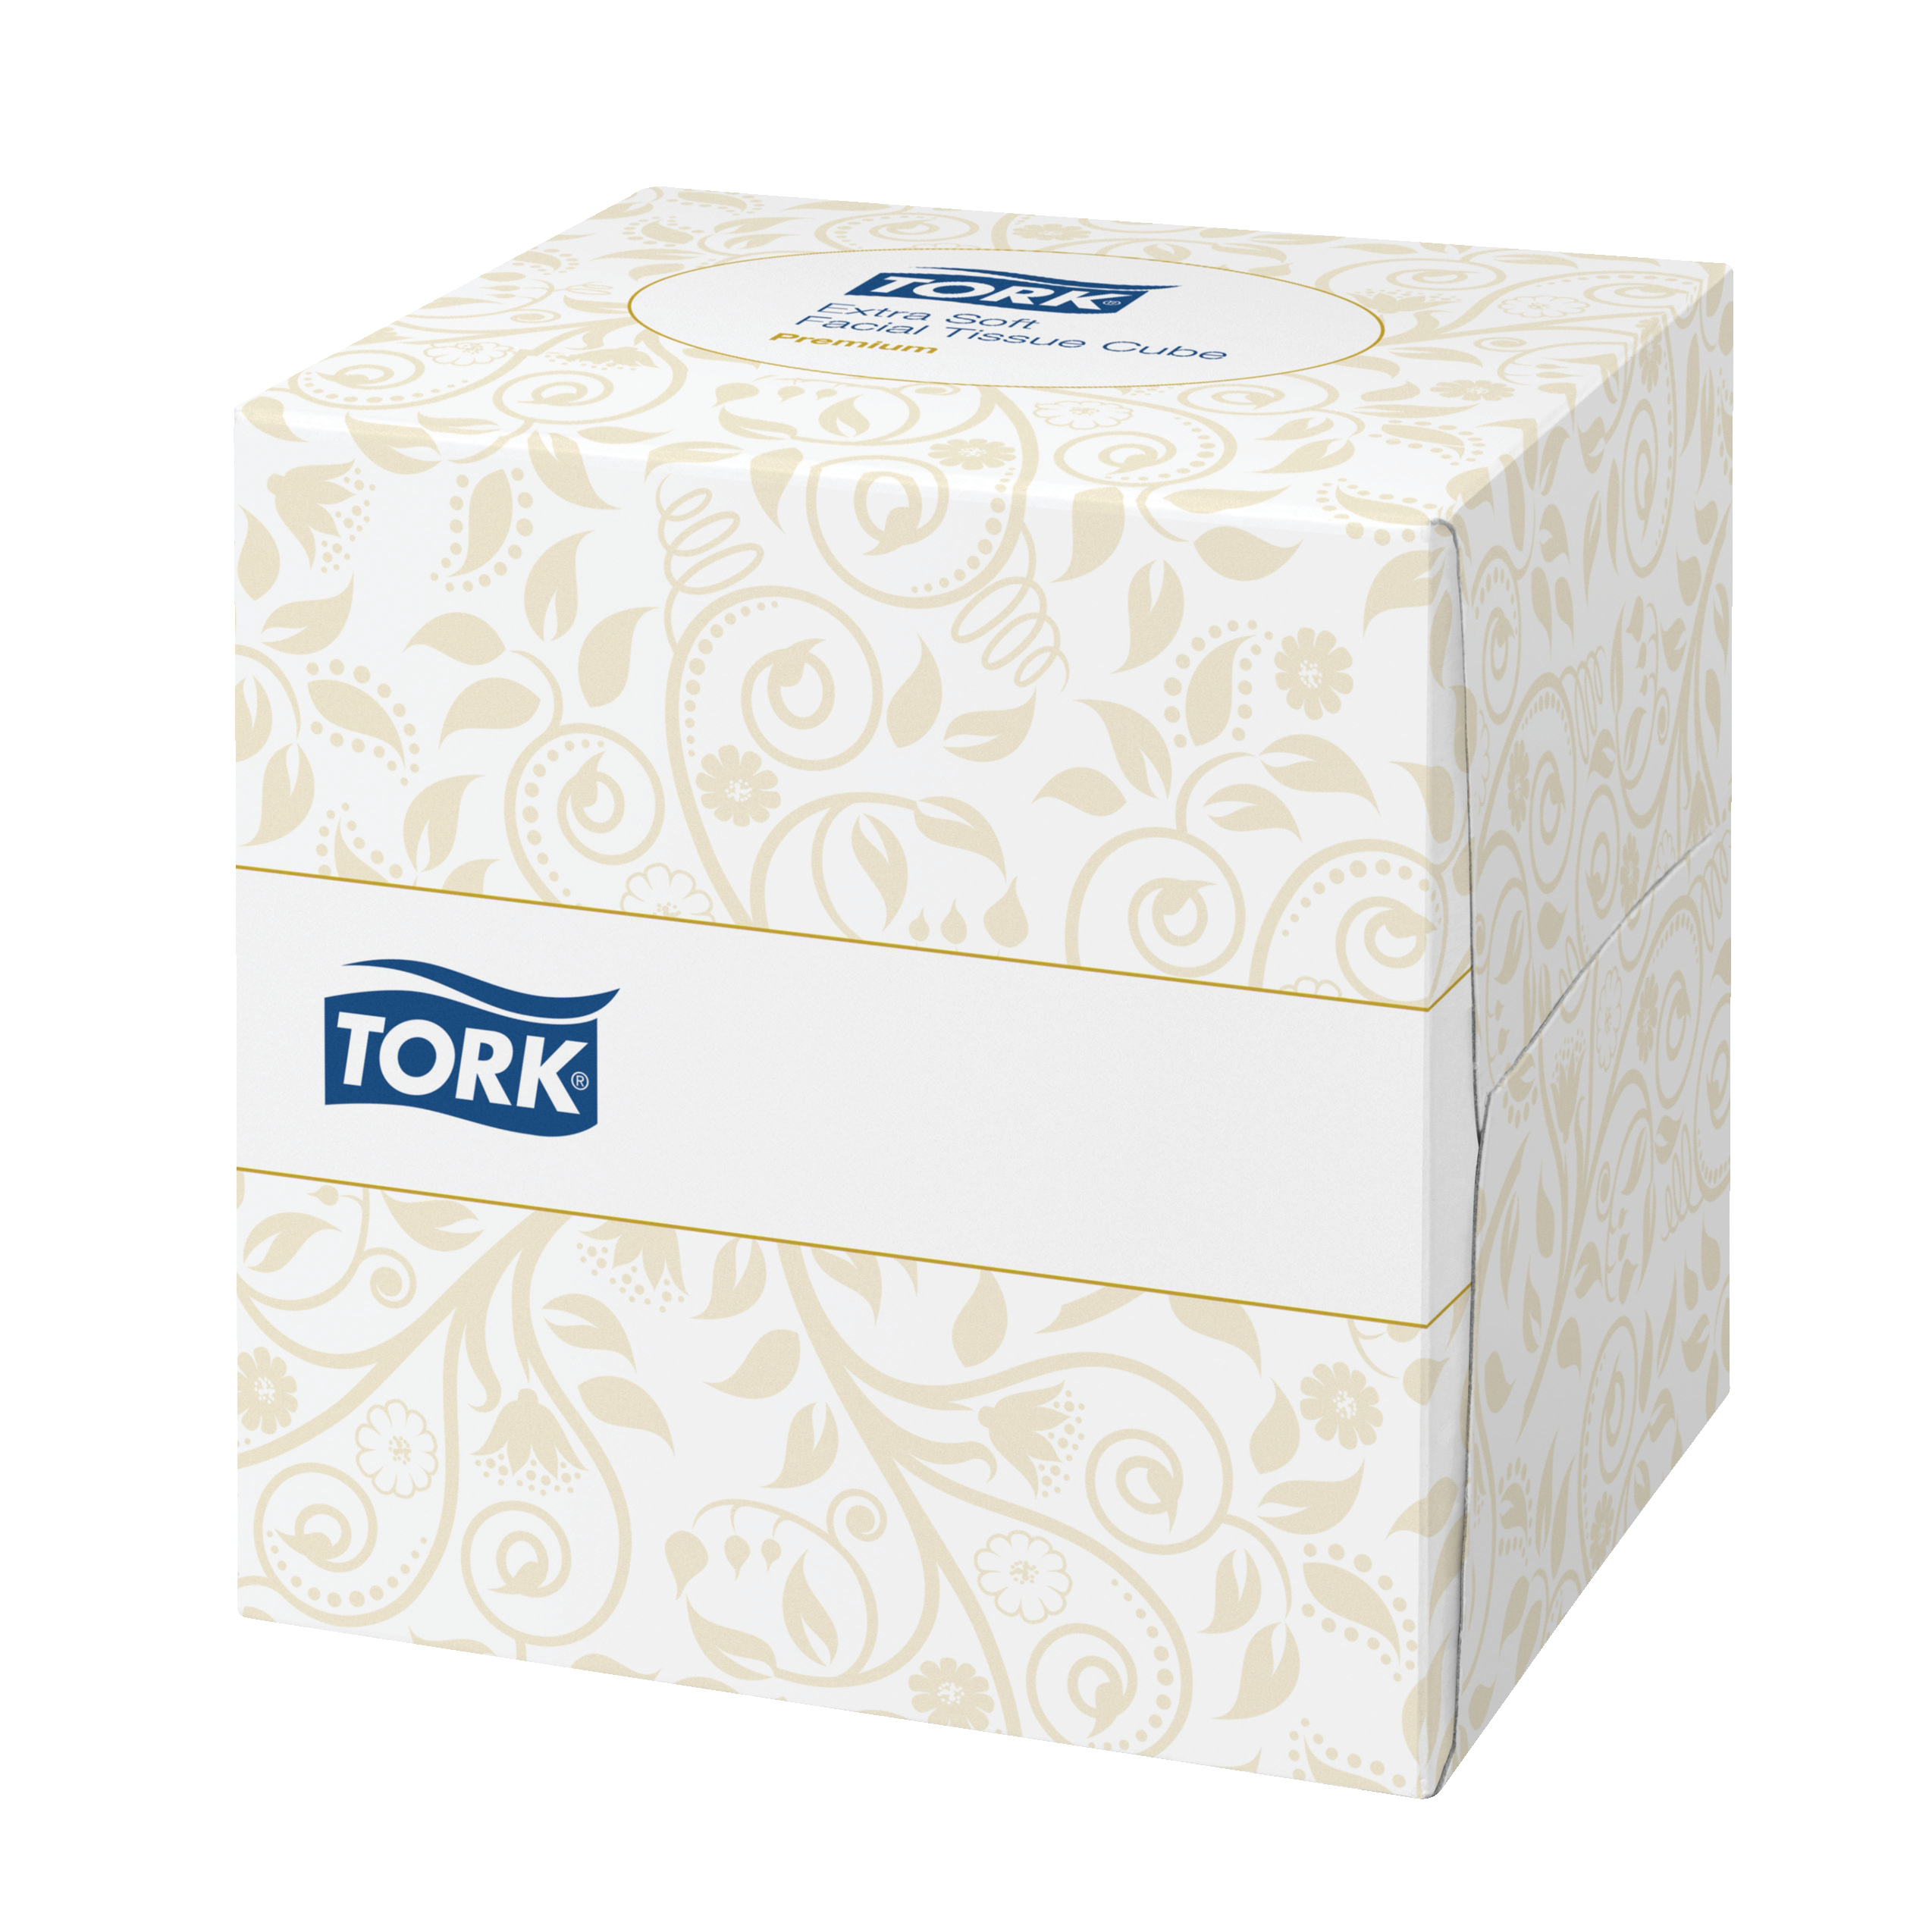 Facial Tissues Tork Facial Tissues Cube 2 Ply 100 Sheets White Ref 140278 Pack 30